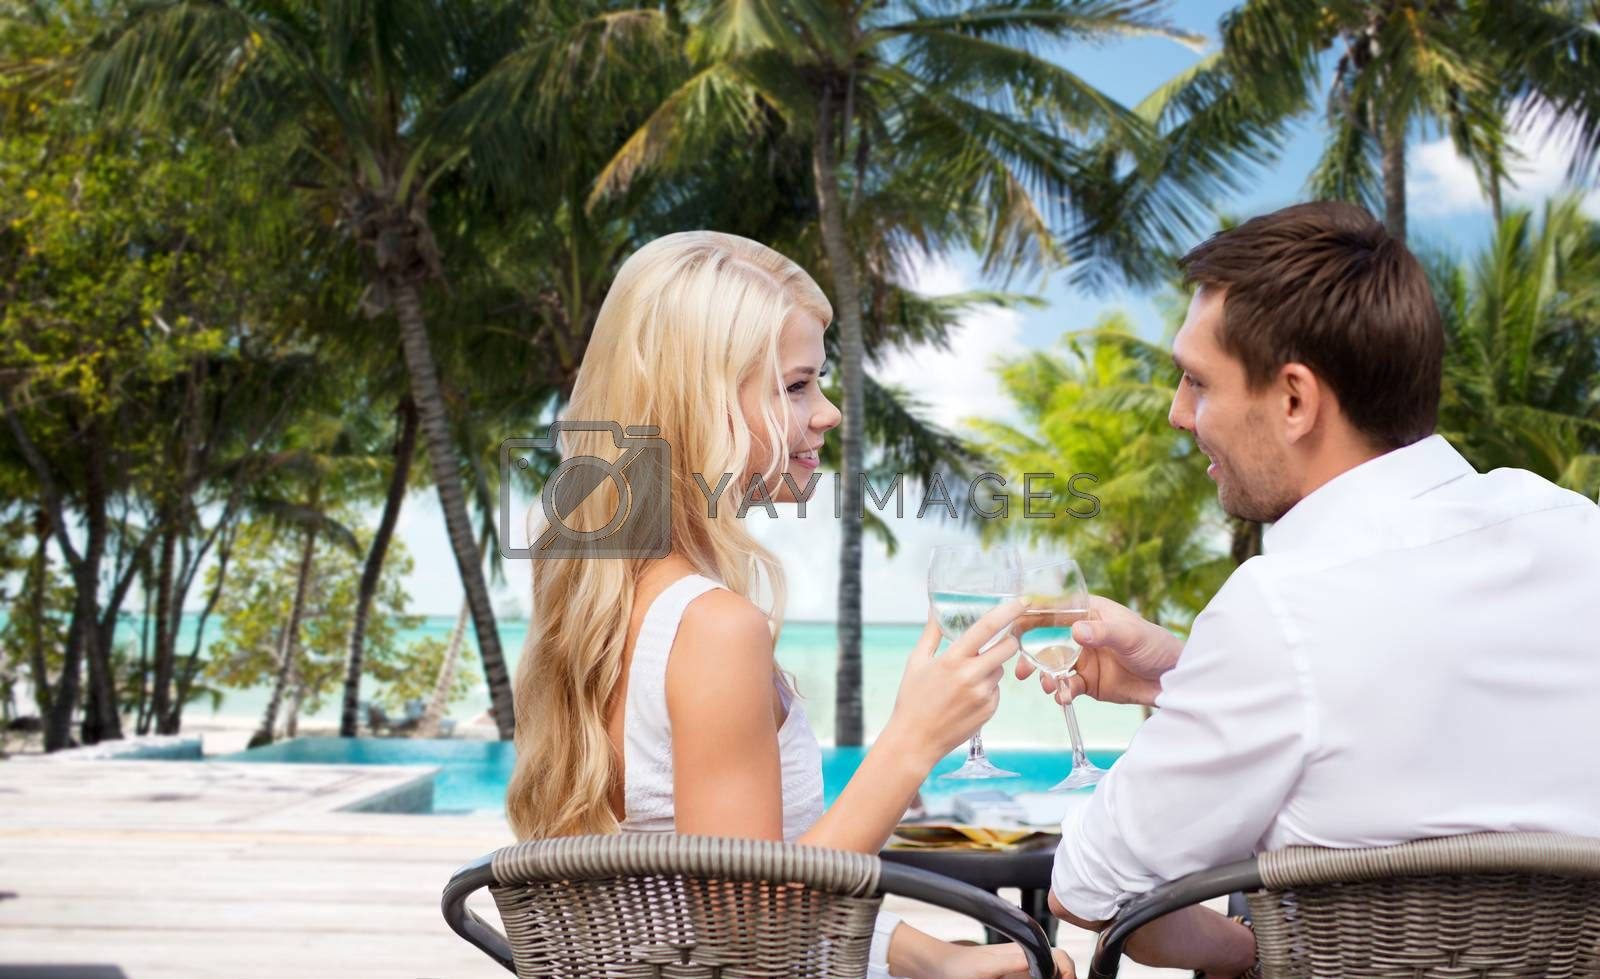 summer holidays, travel, tourism, celebration and dating concept - happy couple drinking wine in cafe over hotel beach with swimming pool background